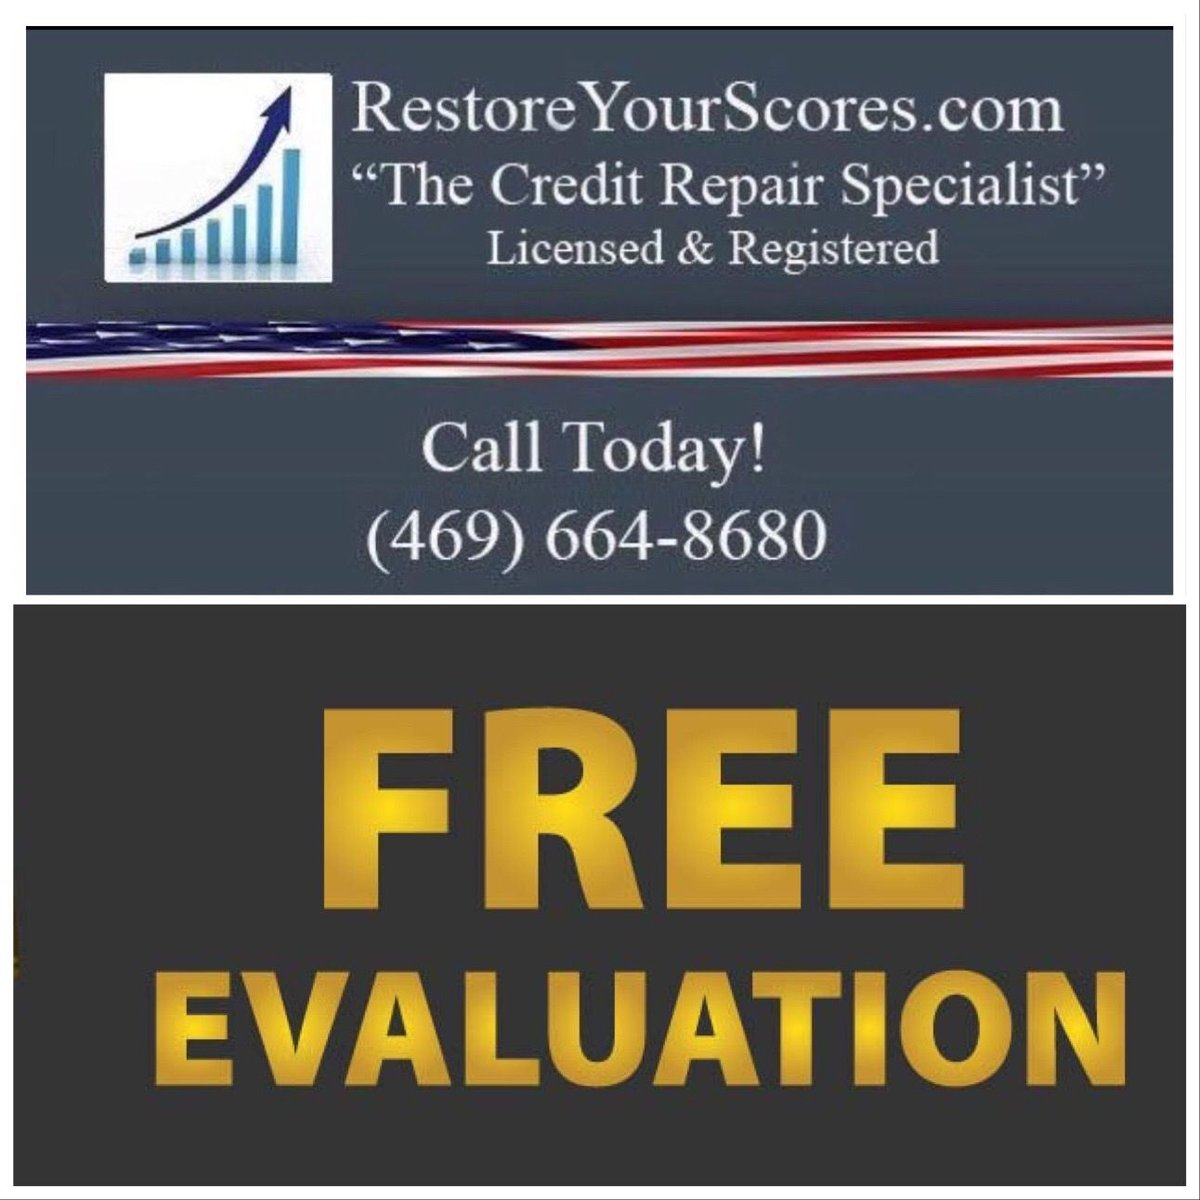 Call today for your free credit evaluation.  #creditrepair #credit #creditrestoration #creditscore #creditrepairservices #tradelines #goodcredit #financialfreedom #money #badcreditpic.twitter.com/0fgiCKTnBj